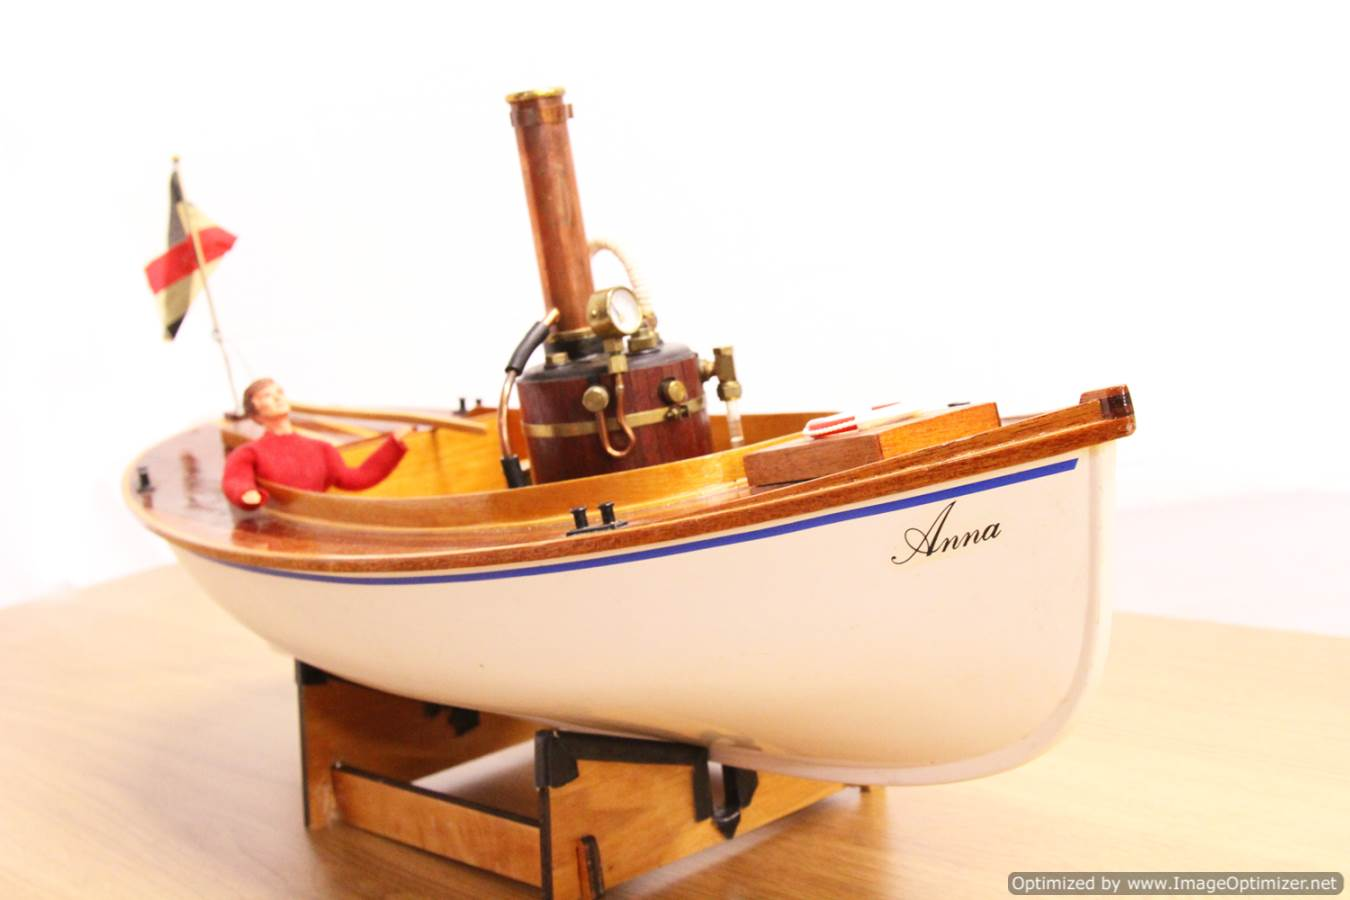 test anna-cheddar-steam-boat-live-steam-model-for-sale-03-optimized